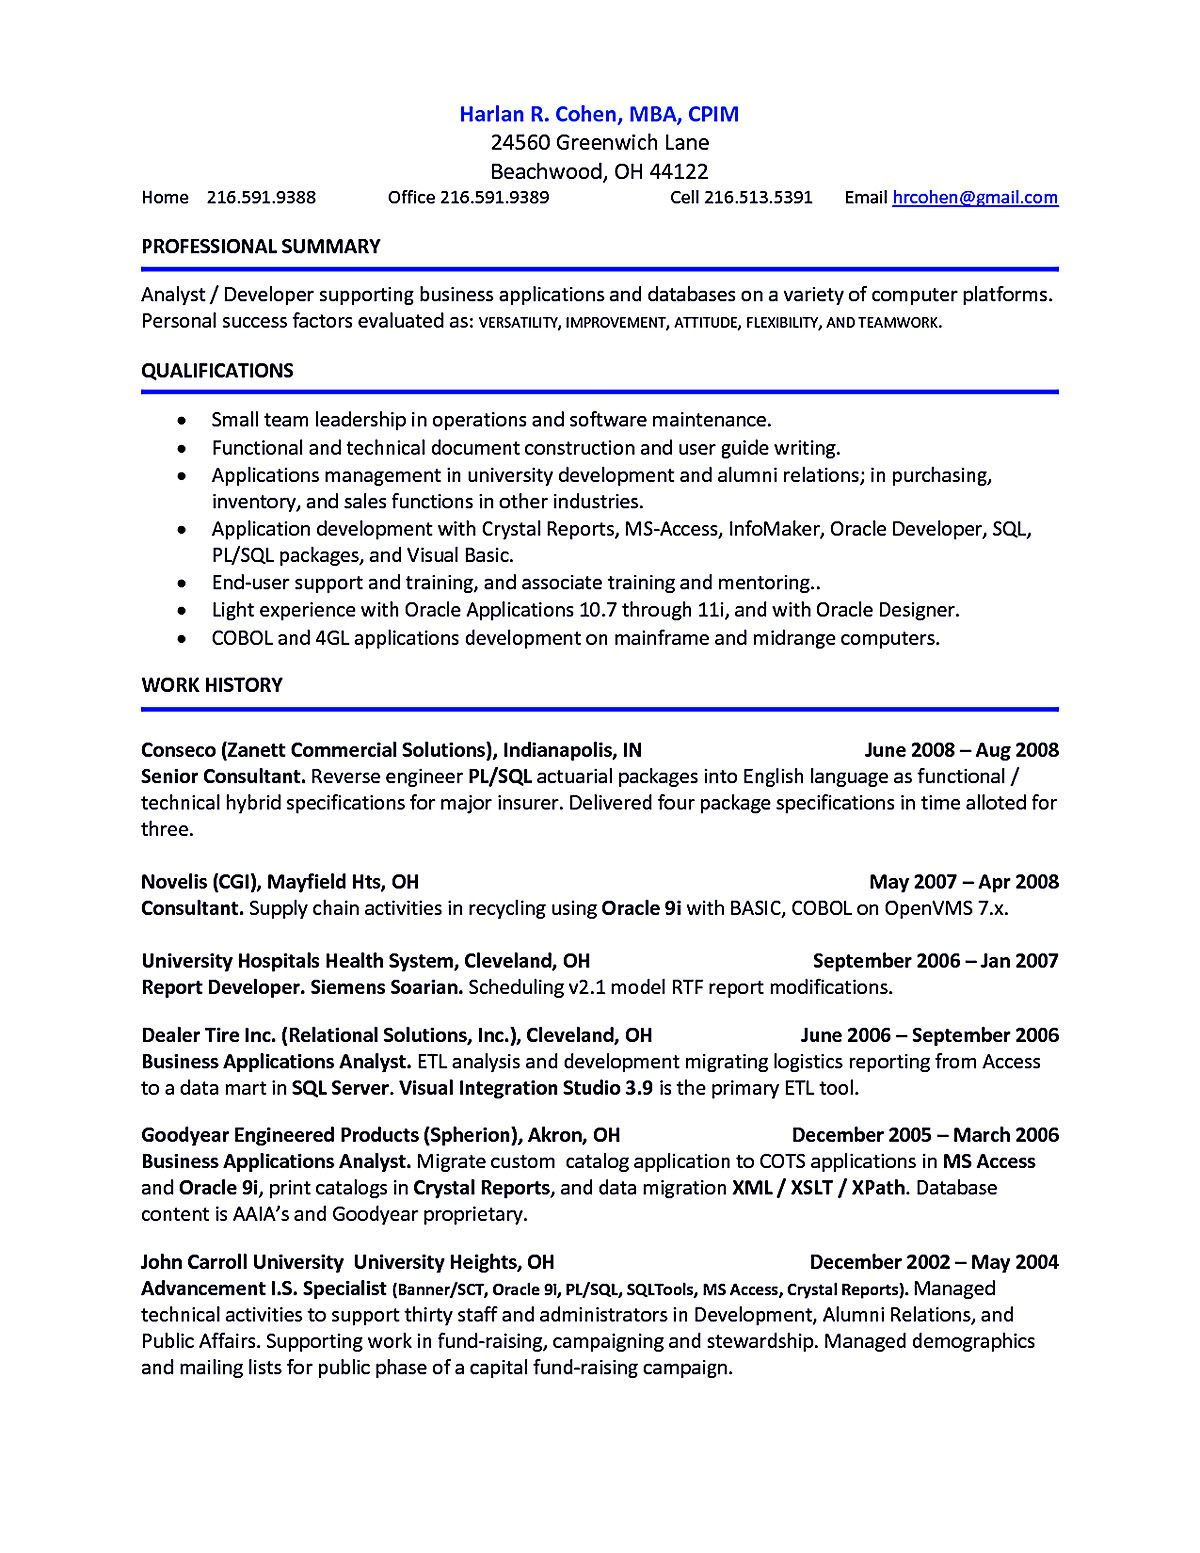 Professional Summary Resume Interesting Account Receivable Resume Shows Both Technical And Interpersonal Design Ideas